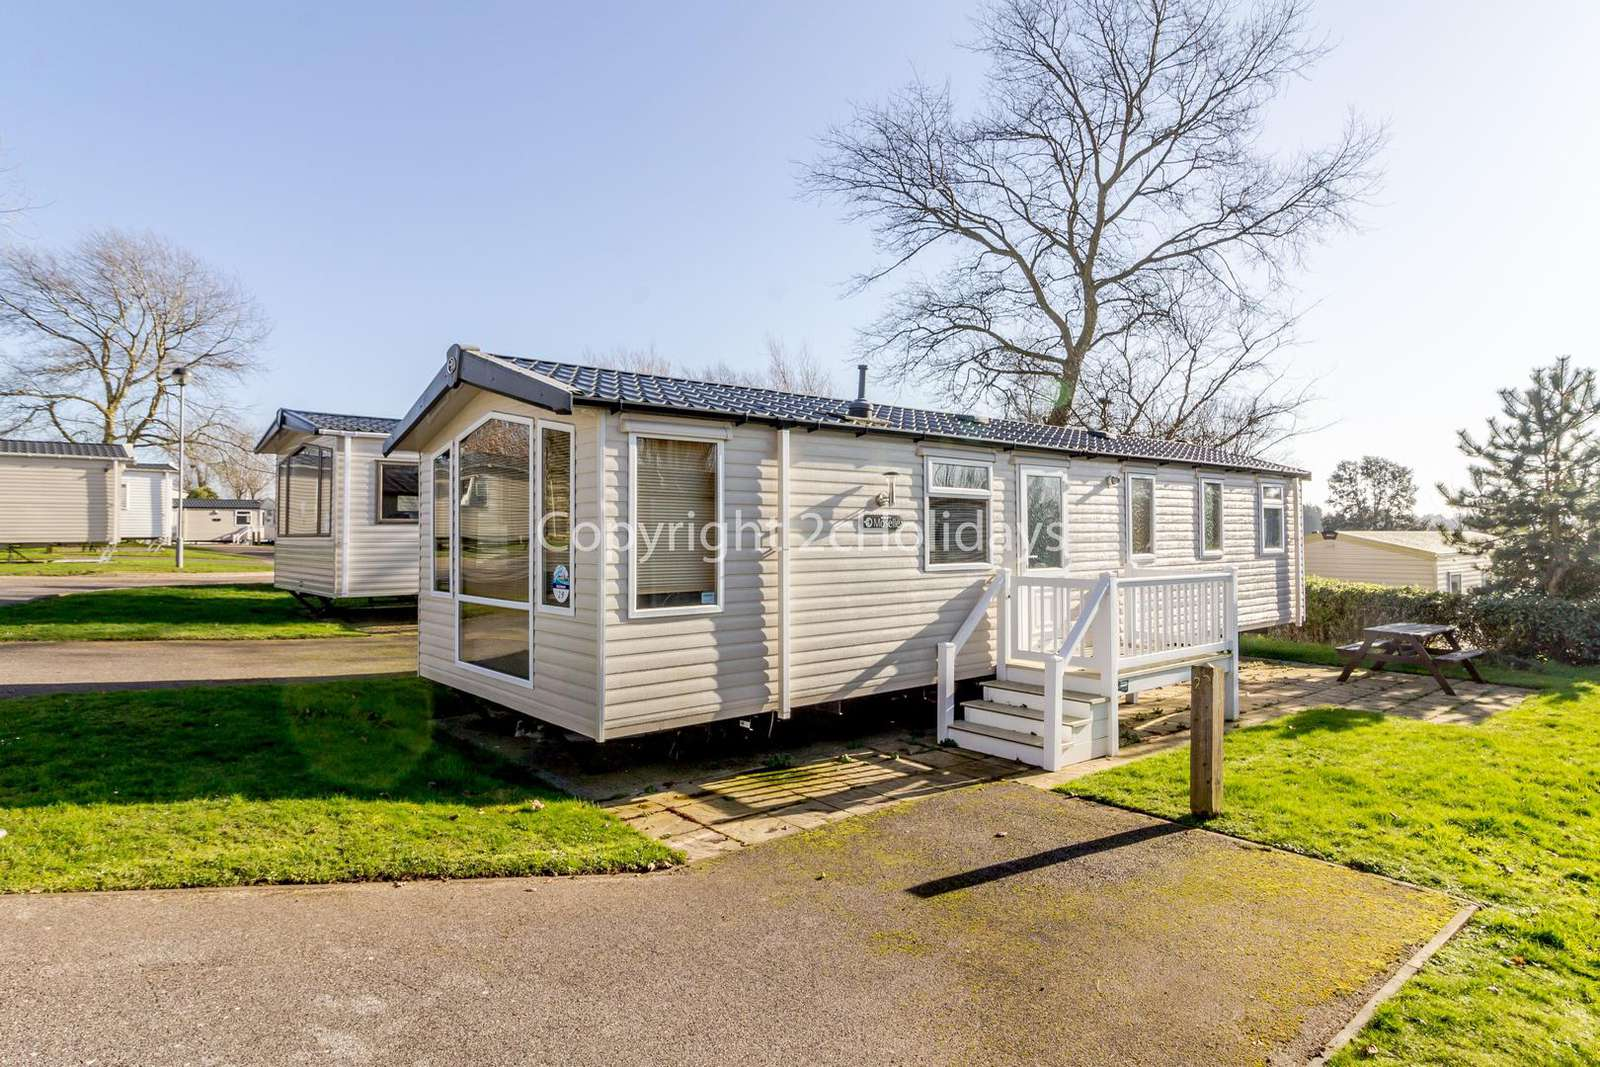 So. many families have enjoyed their stay at Hopton Holiday Village